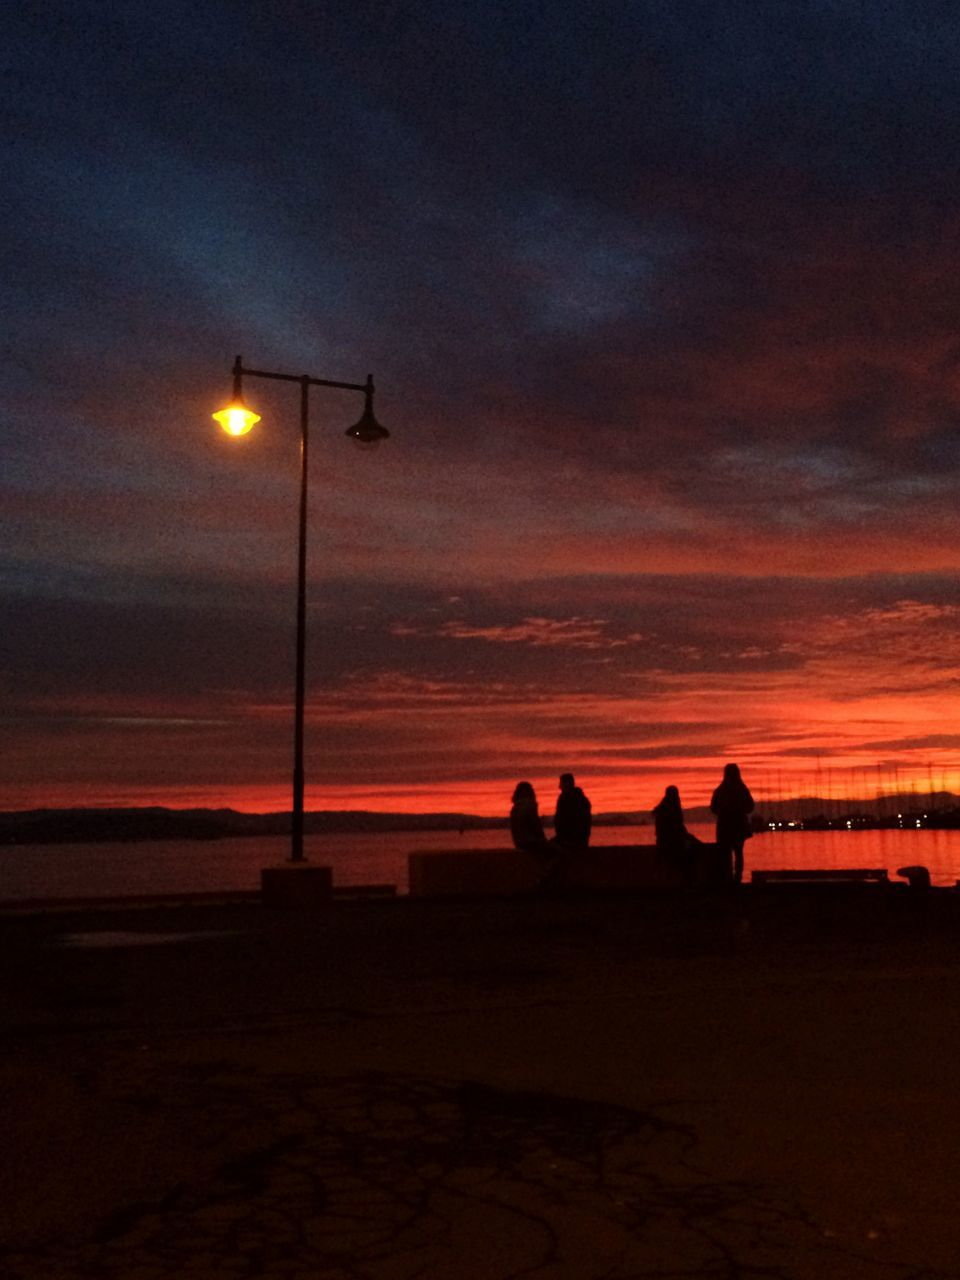 sunset, sky, silhouette, illuminated, nature, street light, cloud - sky, outdoors, beauty in nature, scenics, sitting, lifestyles, real people, night, sea, leisure activity, beach, togetherness, men, water, people